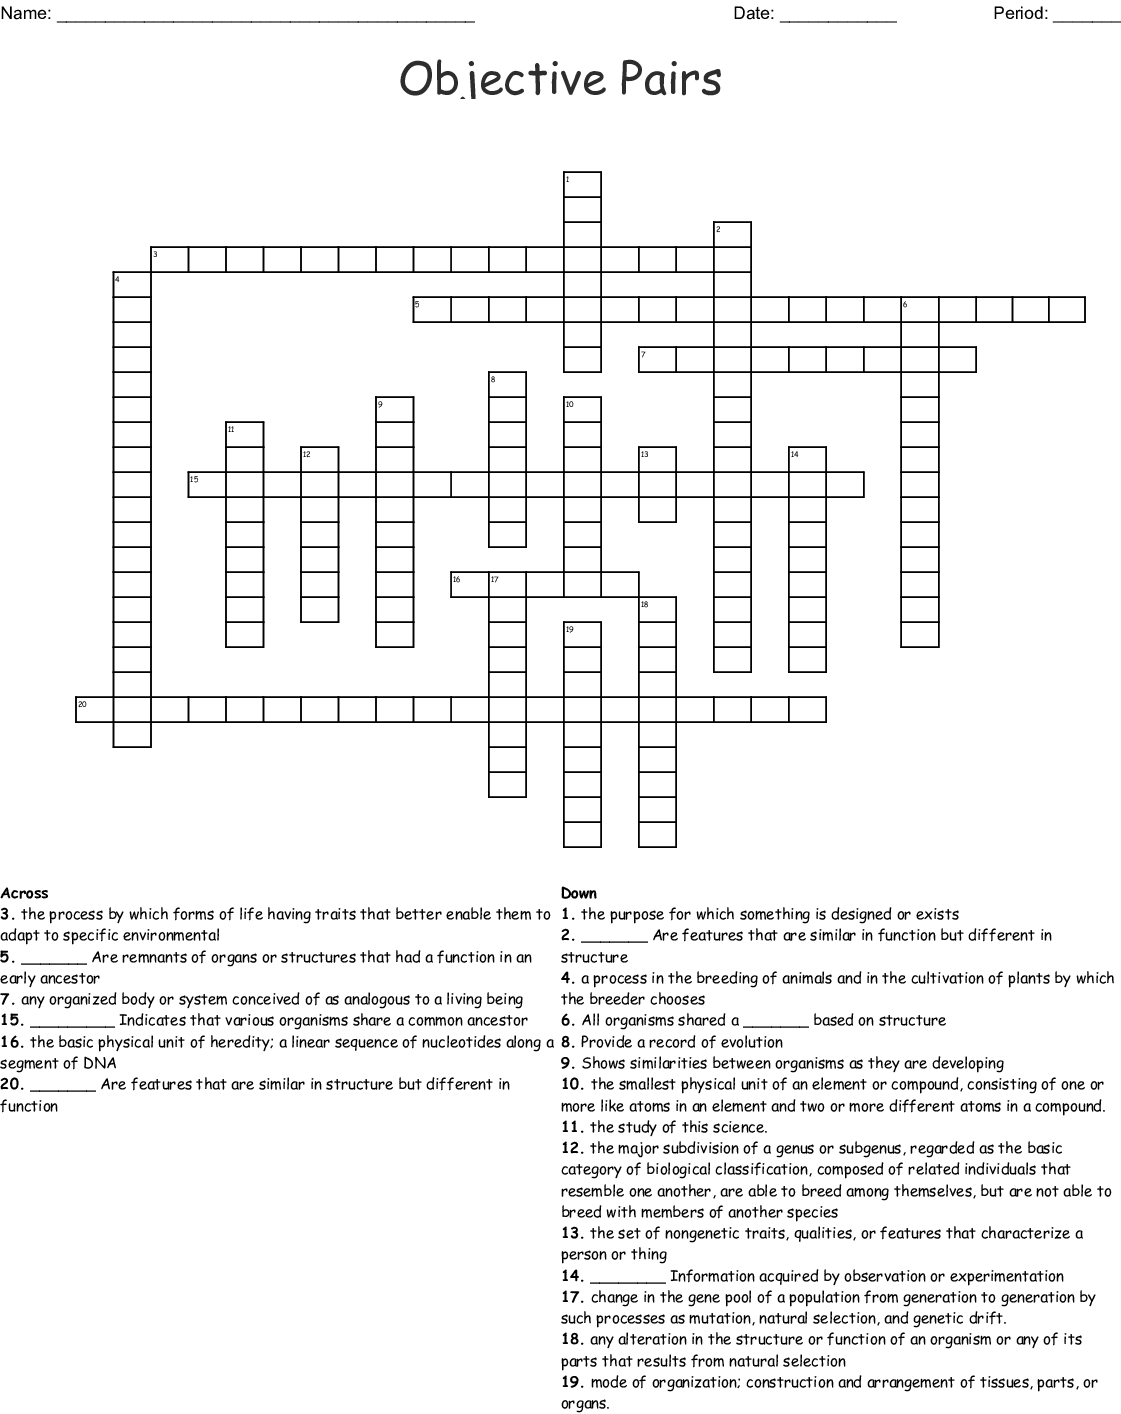 Objective Pairs Crossword